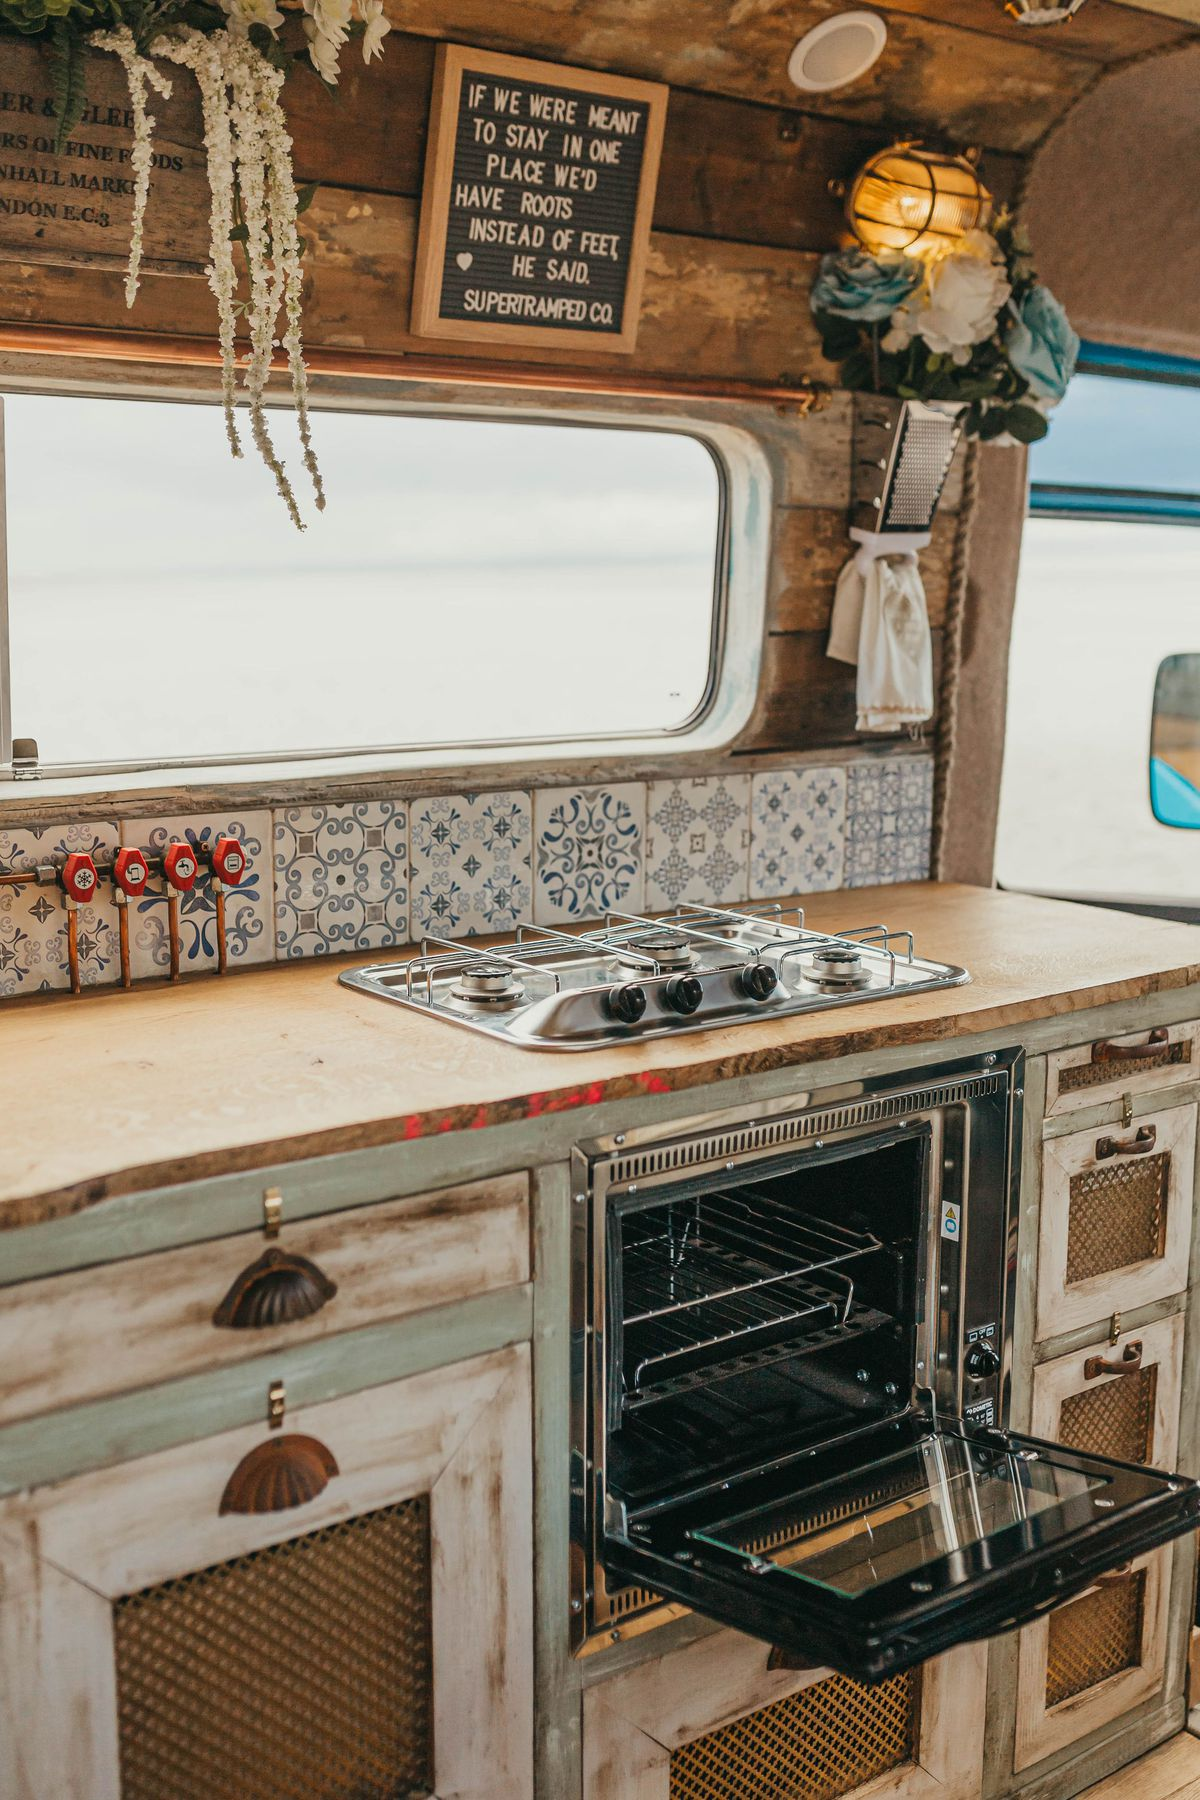 Camper Van Is A Beachy Tiny Home On Wheels Curbed